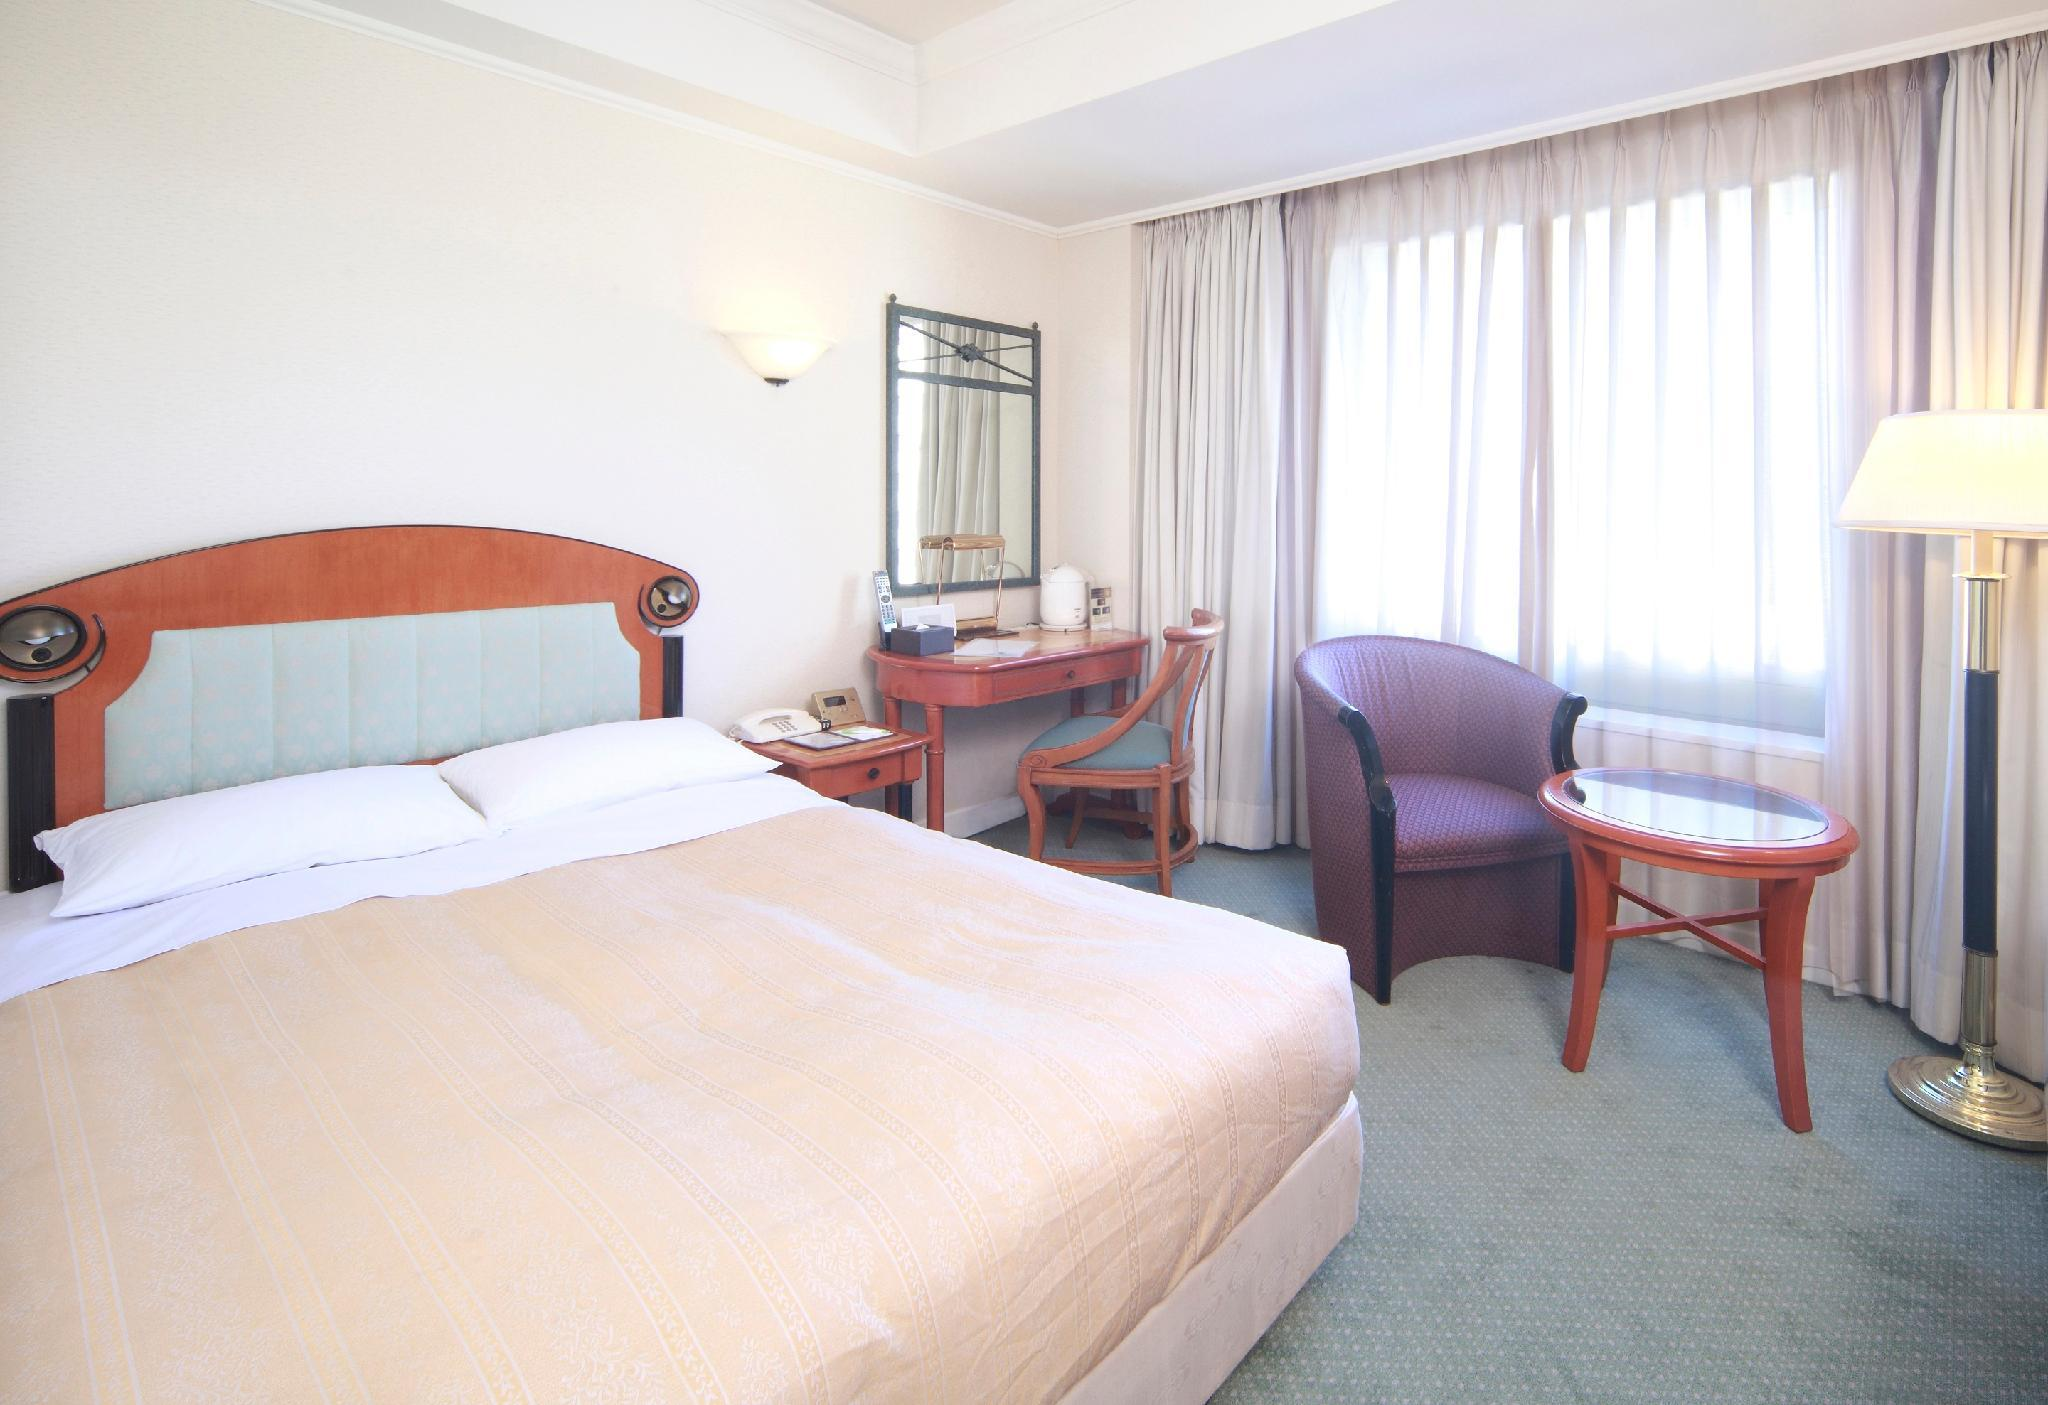 Low Floor Room with Small Double Bed - Smoking, Check-In After 9:00 PM, Check-Out Before 11:00 AM